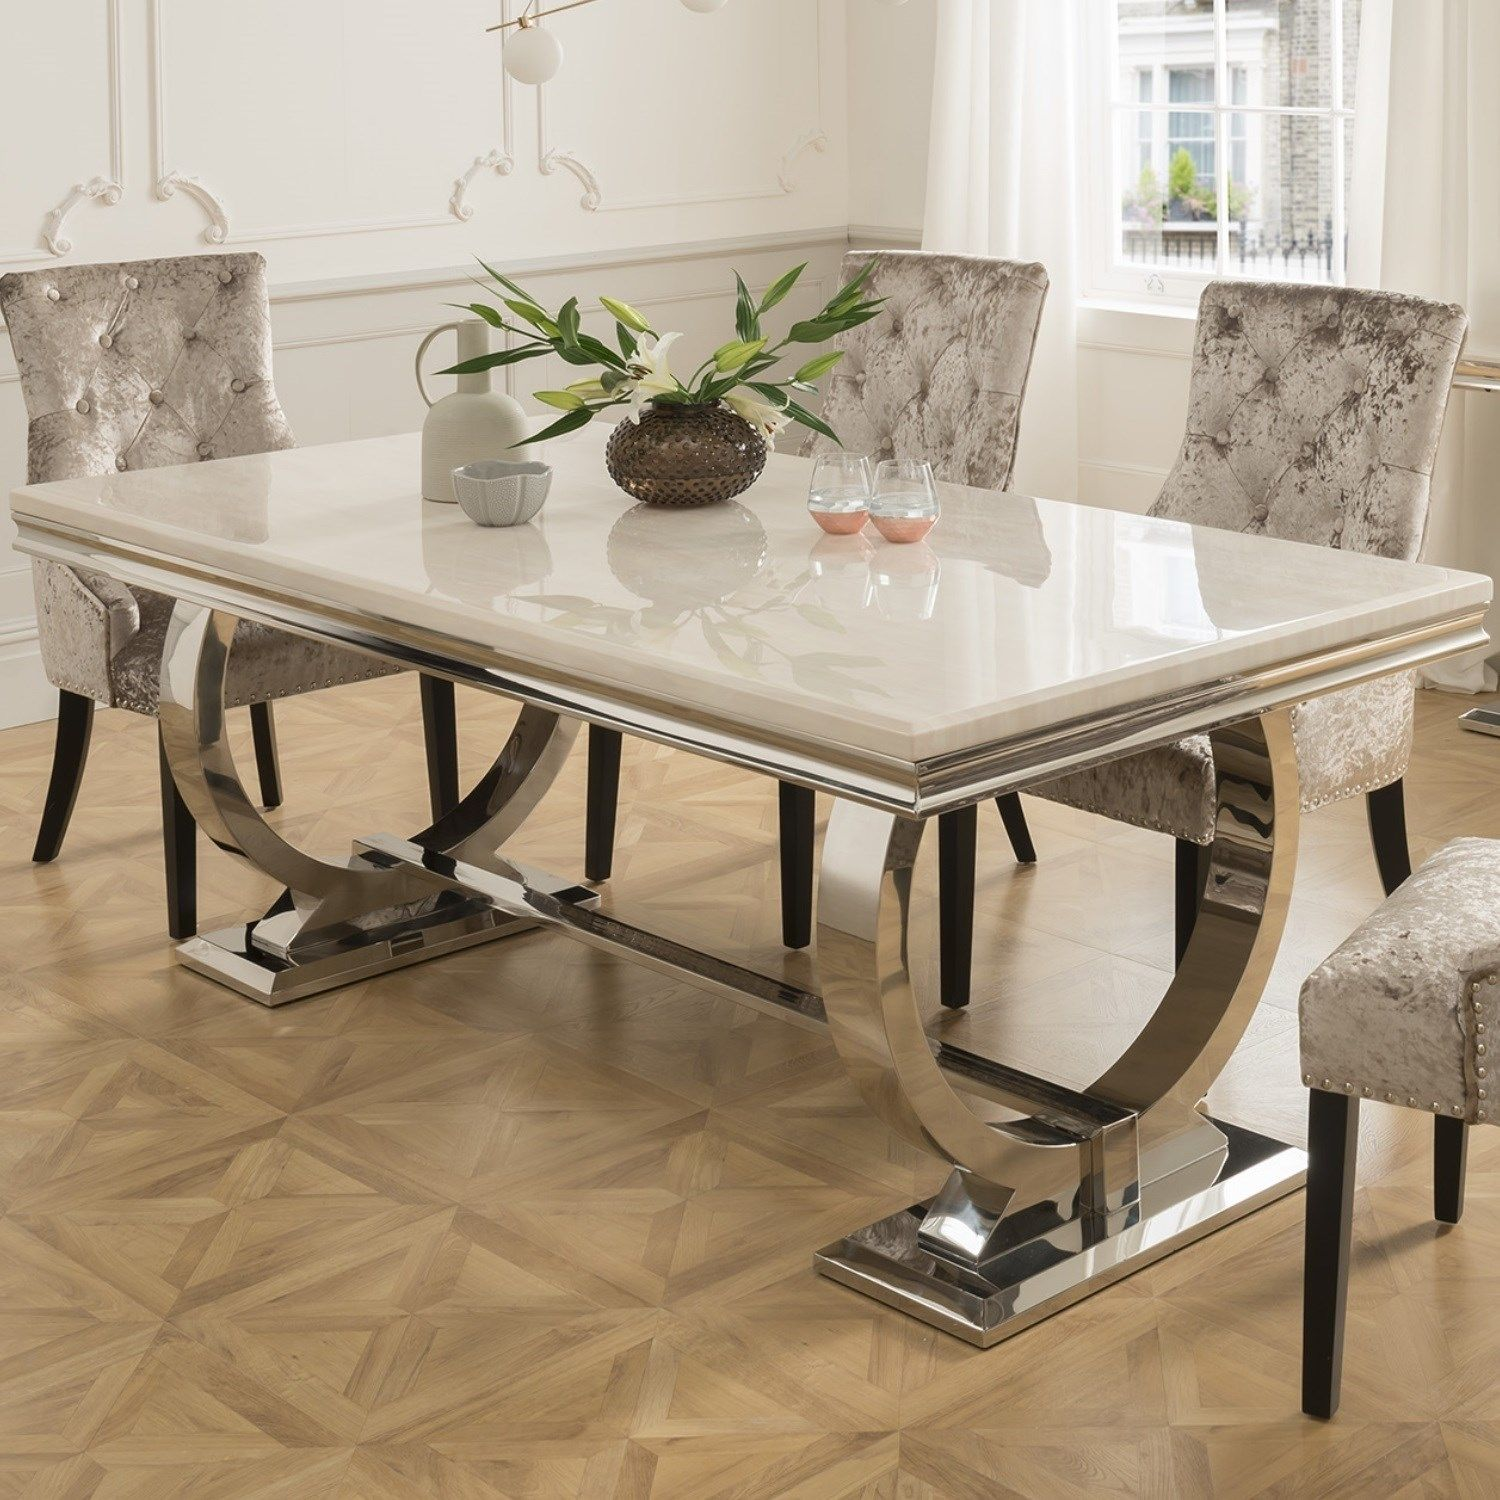 Vida Living Arianna Cream Marble Dining Table 180cm Dining Table